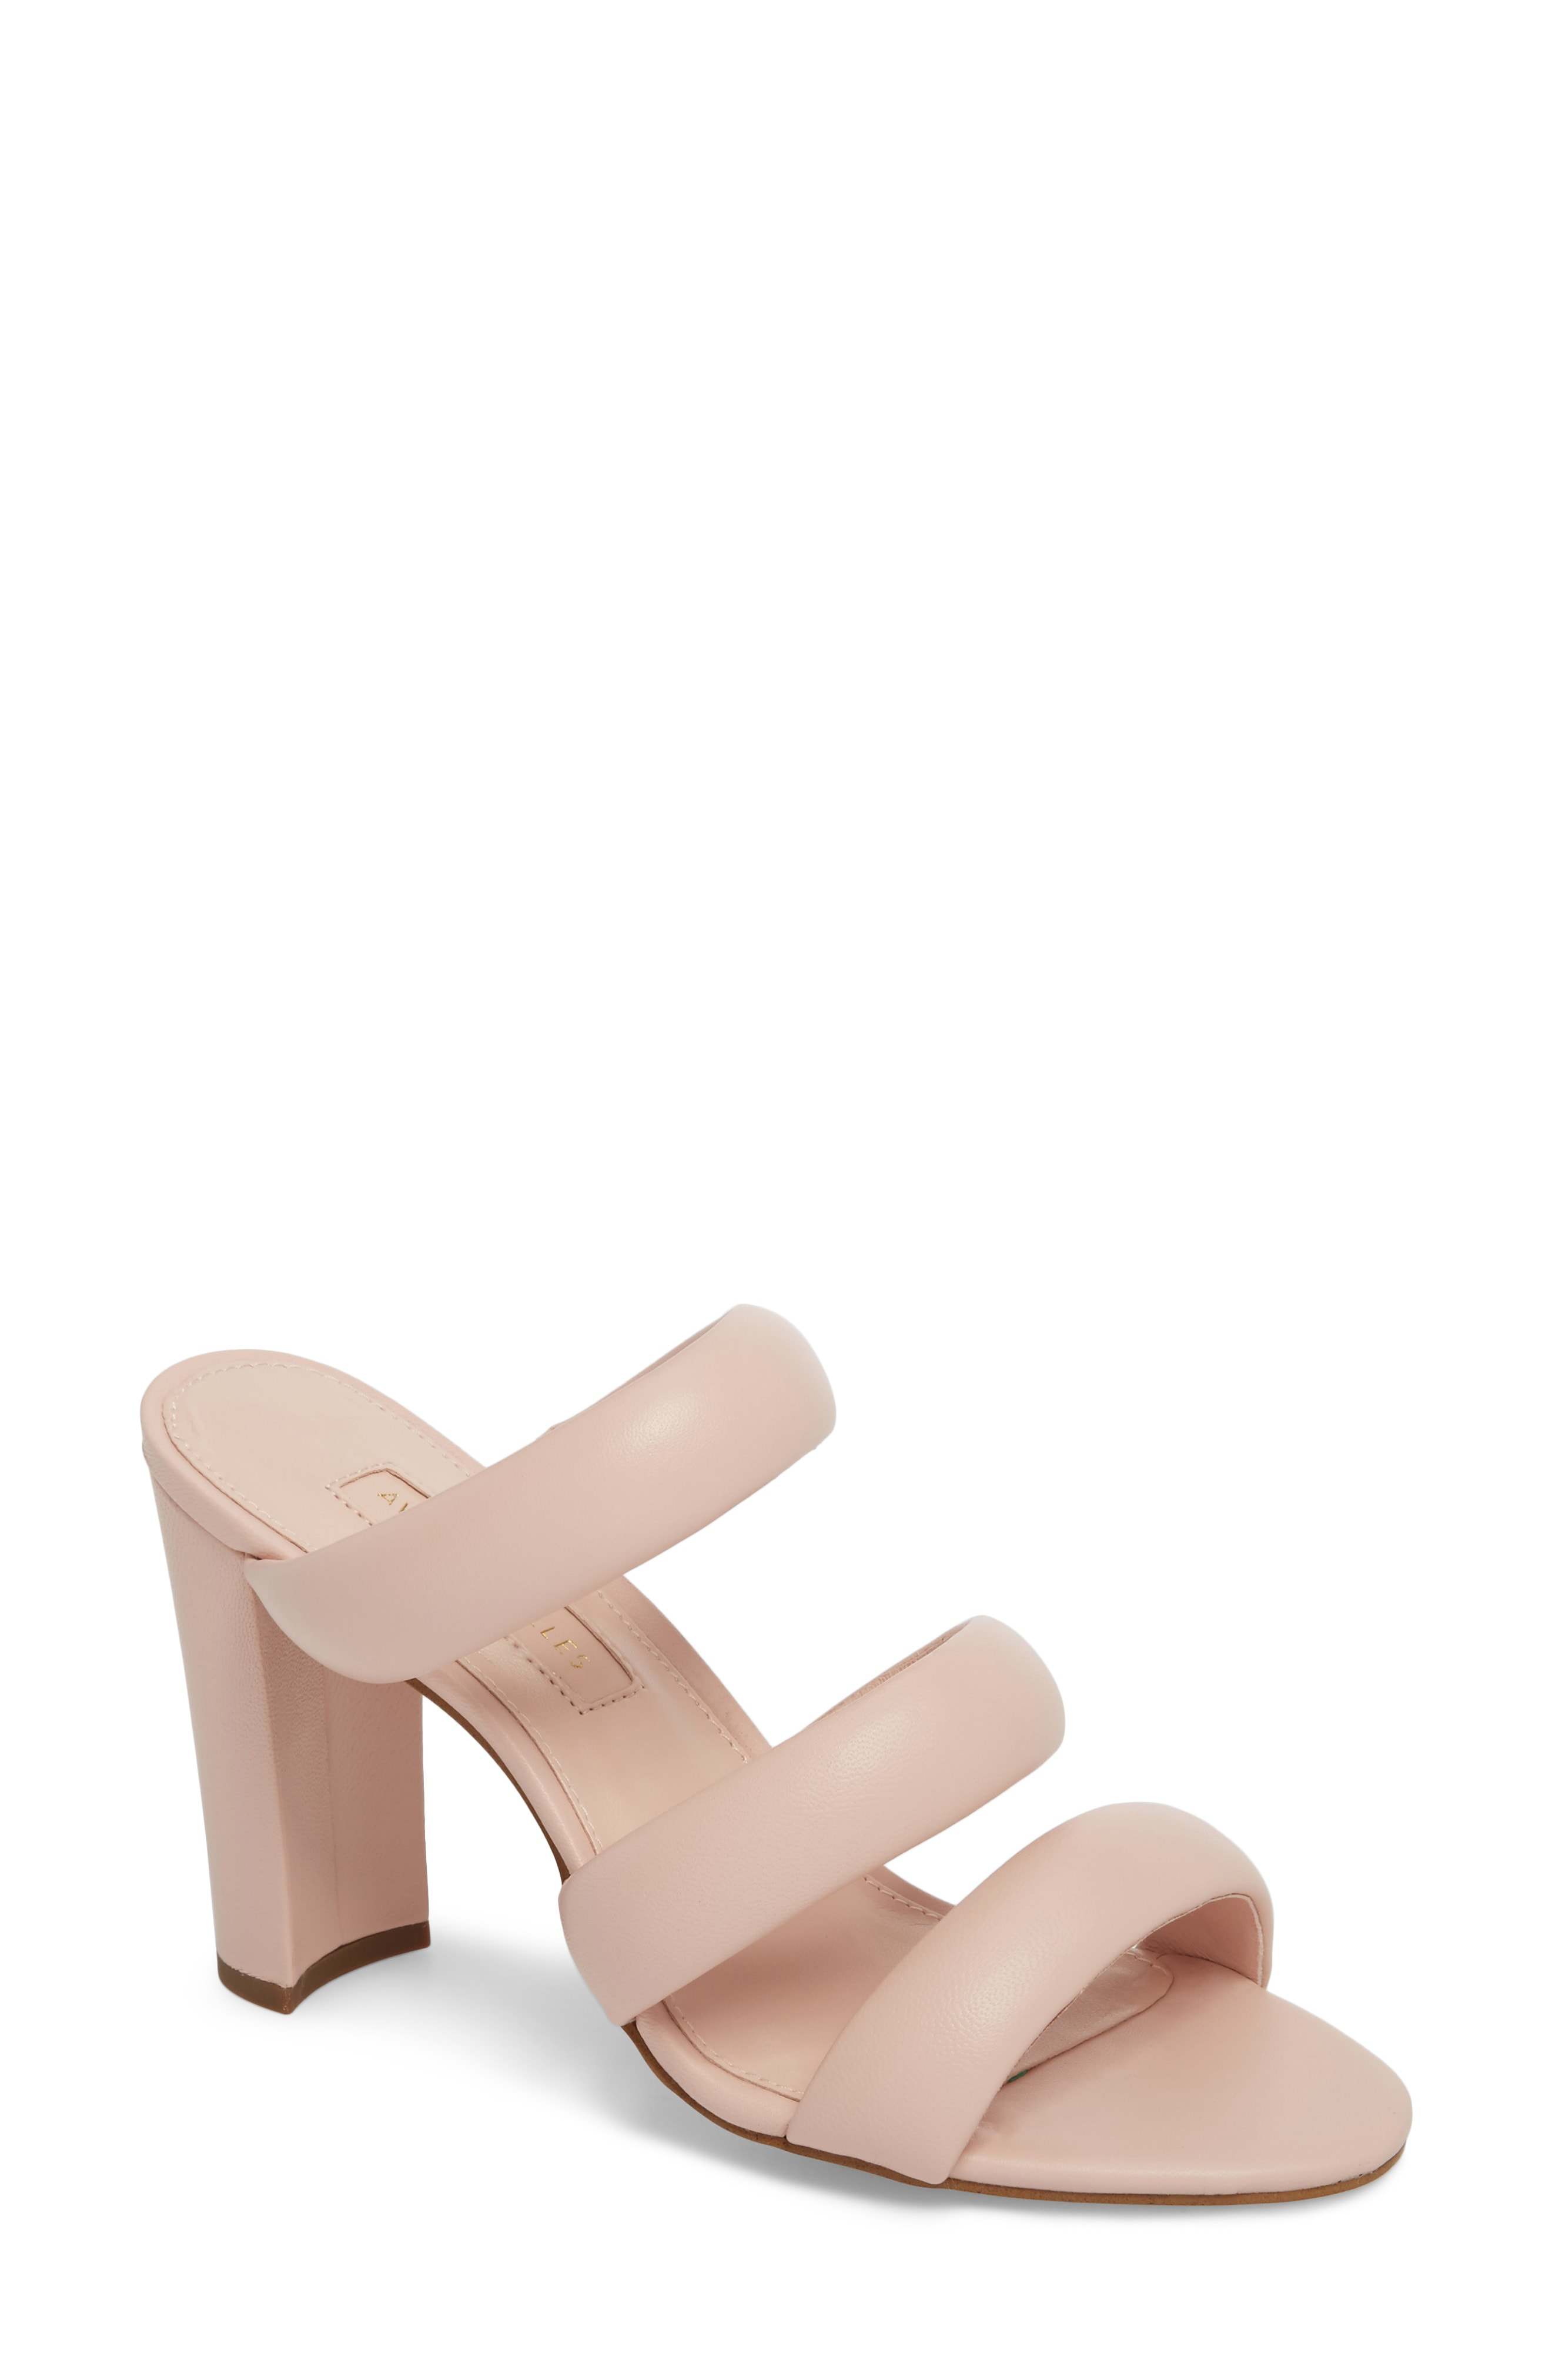 Mara Banded Mule in Avec Pink Leather